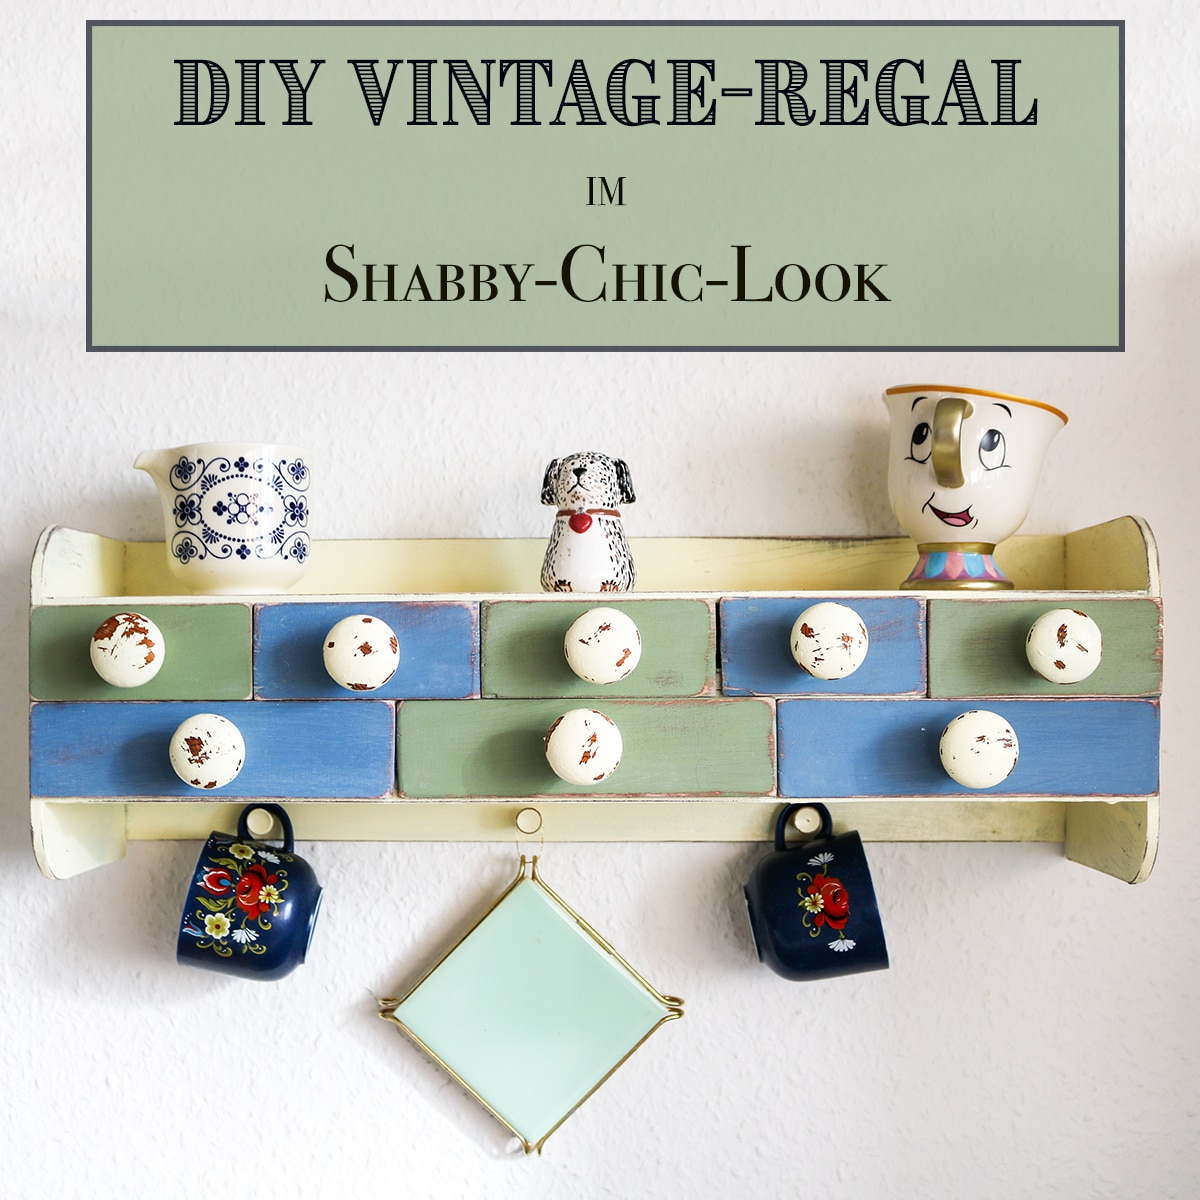 DIY Küchenregal im Vintage Look › Anleitungen, Do it yourself › DIY ...